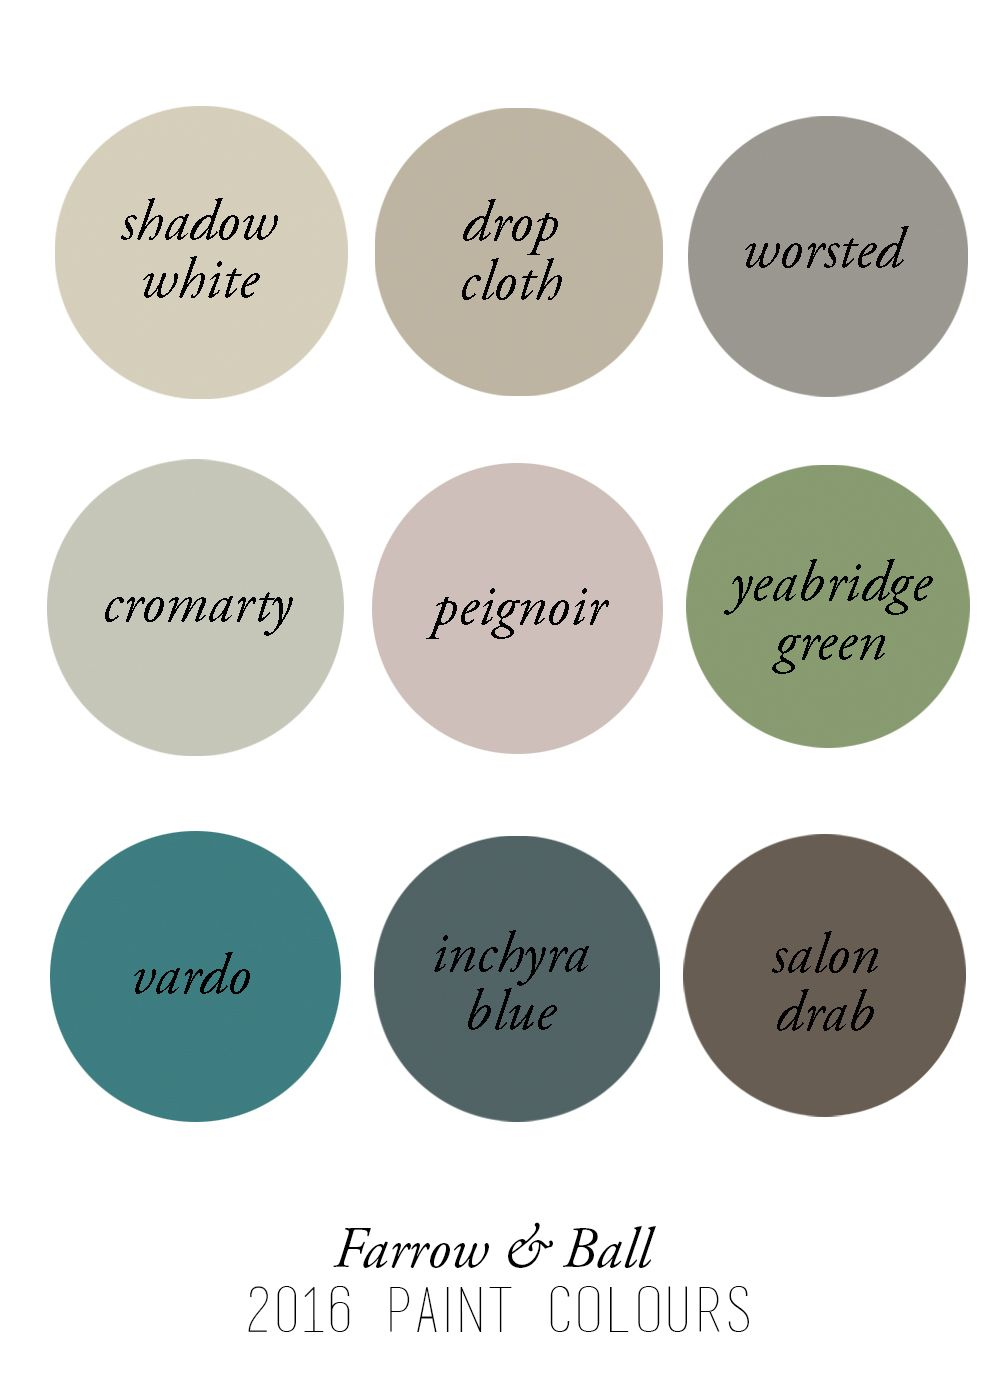 My Favourite New Colour Farrow Ball Giveaway Farrow Ball Farrow And Ball Paint Farrow And Ball Living Room